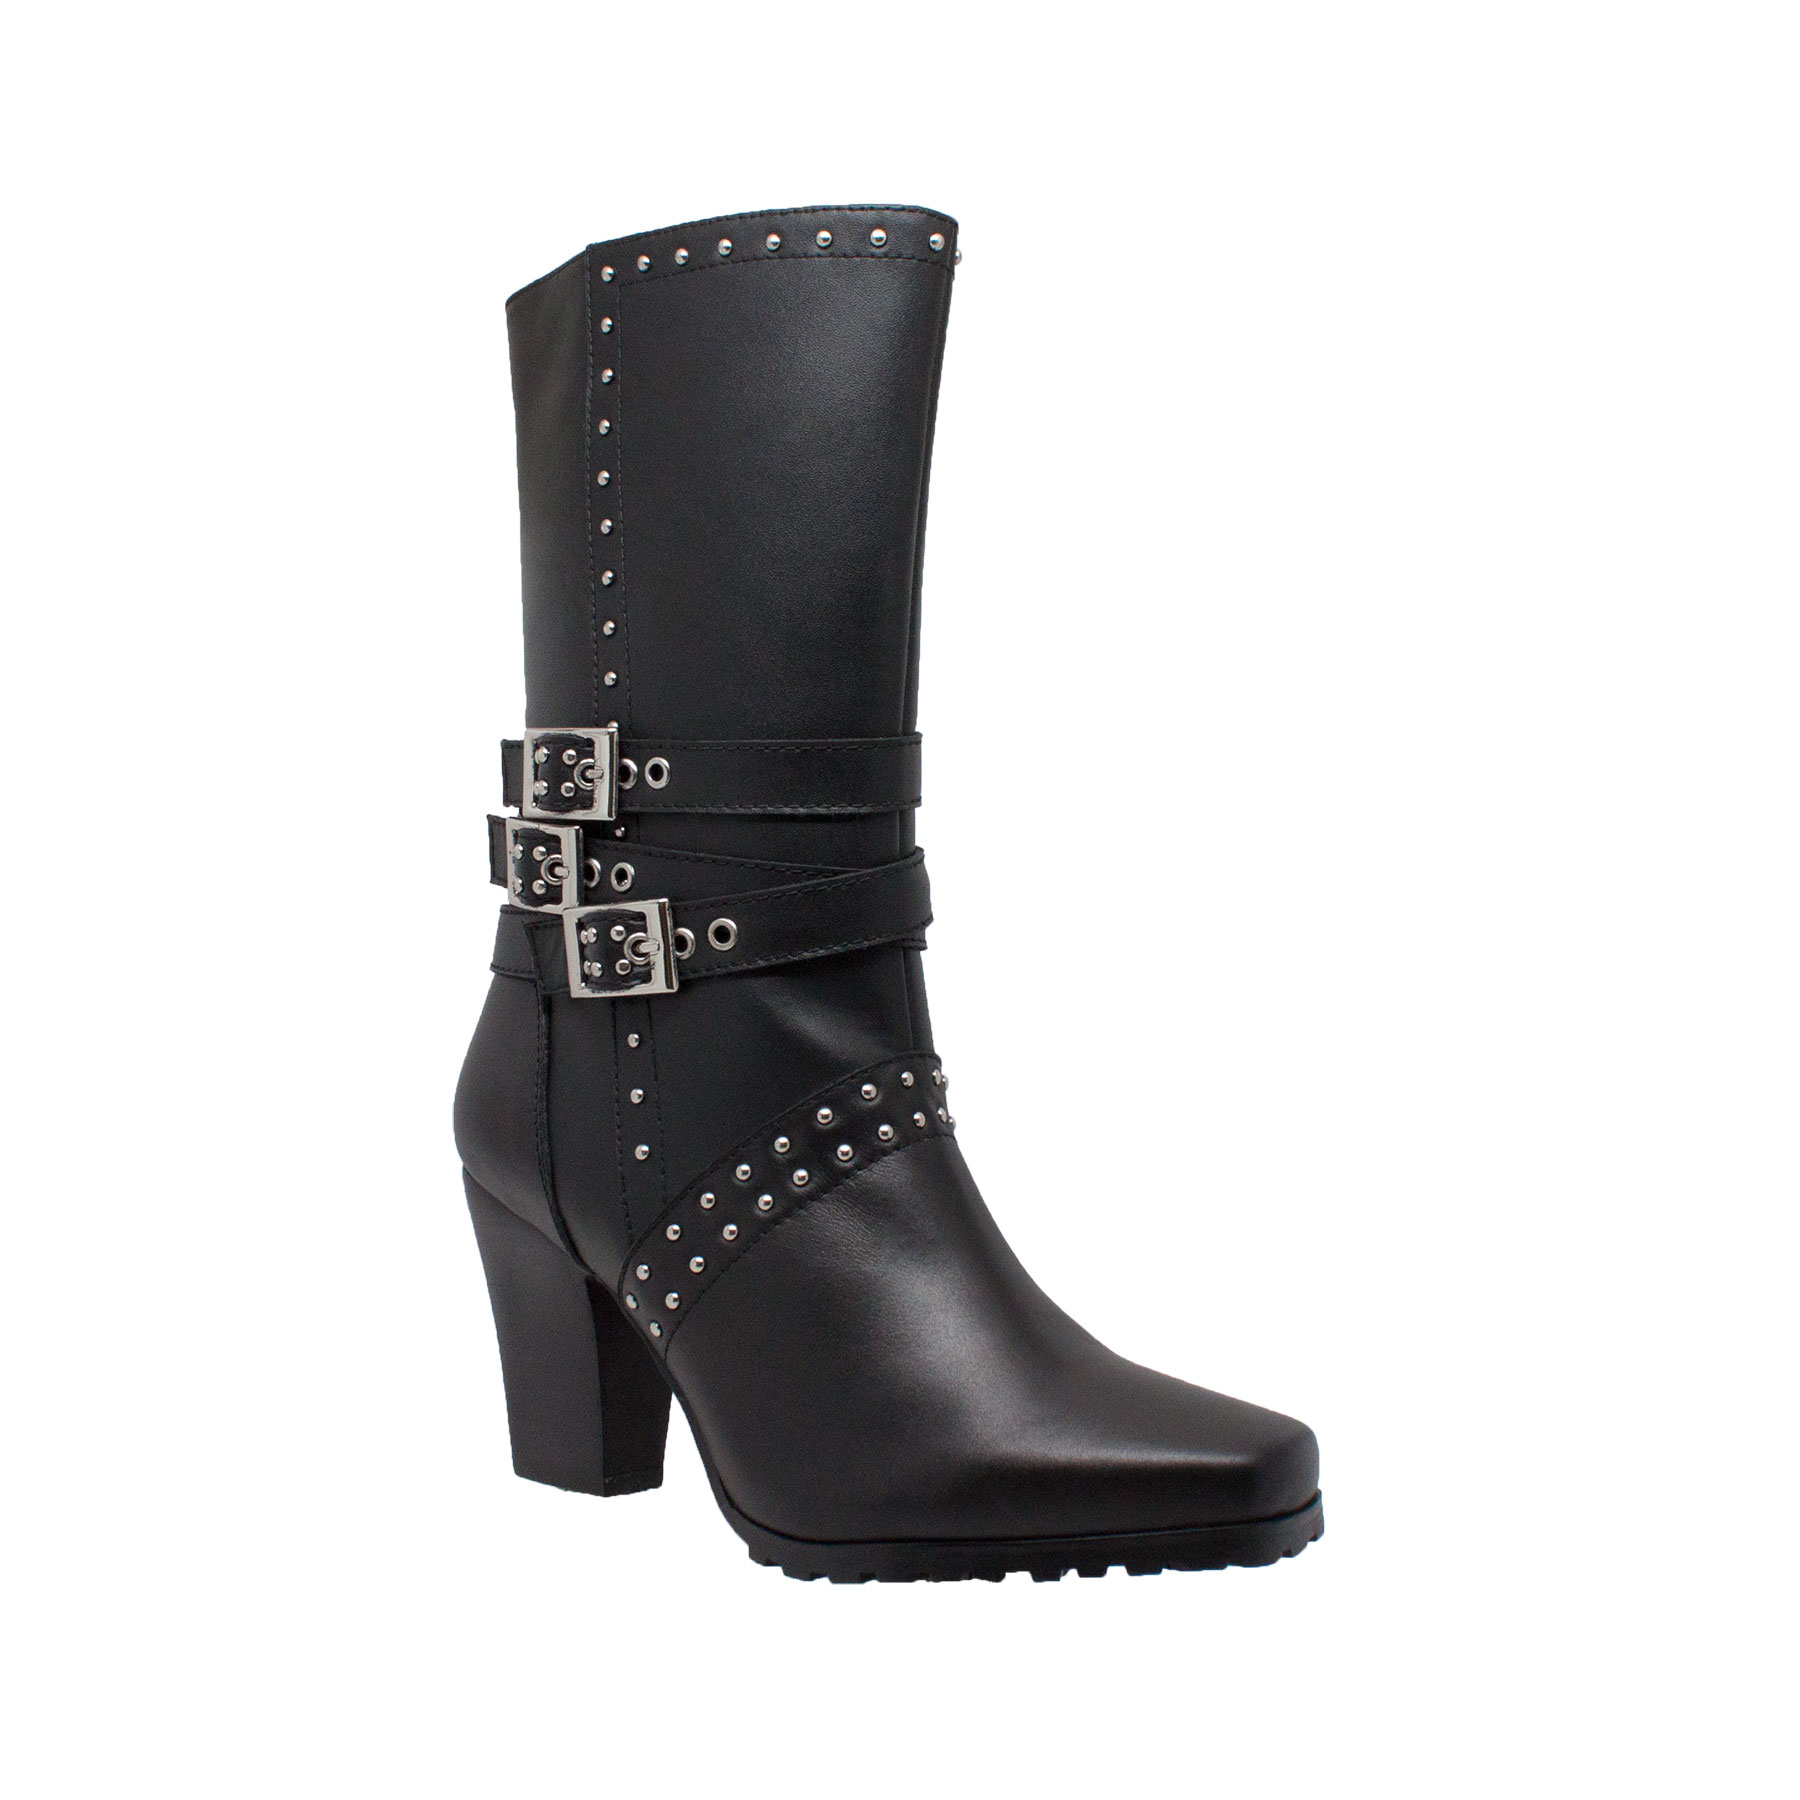 Women's 12 12 12  Heeled Buckle Boot Black, Size - 6 f0e692